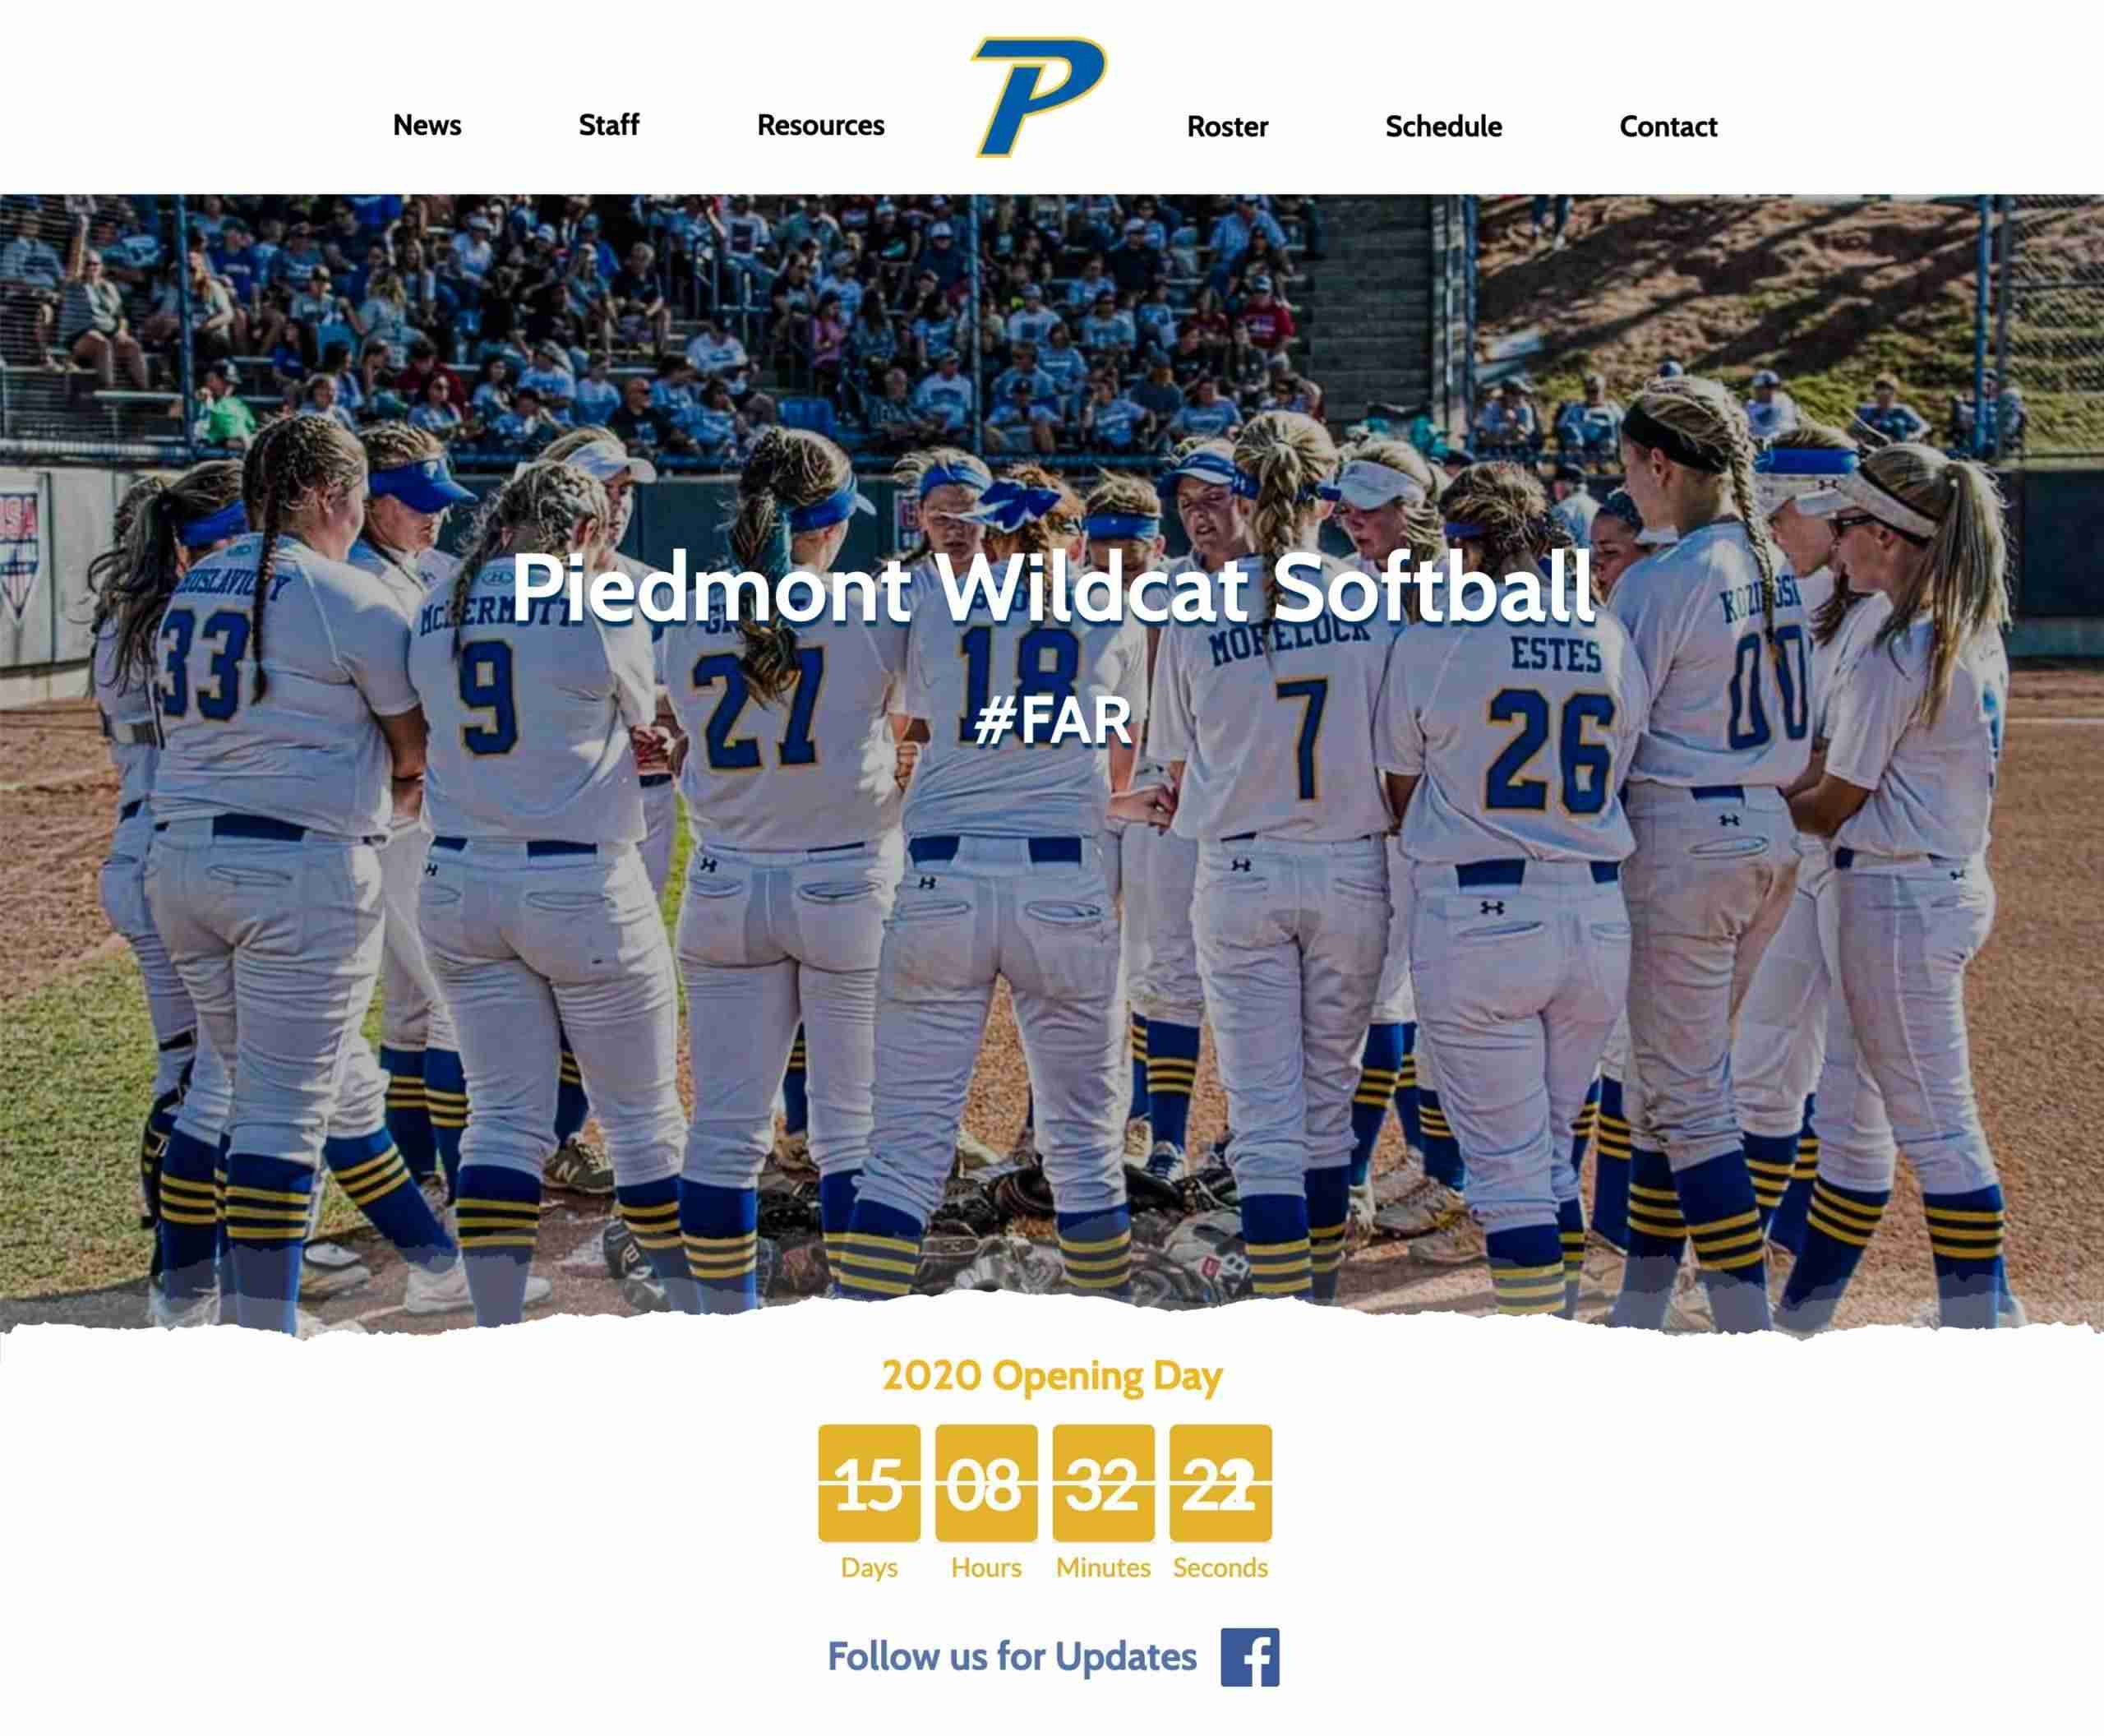 Piedmont Wildcat Softball